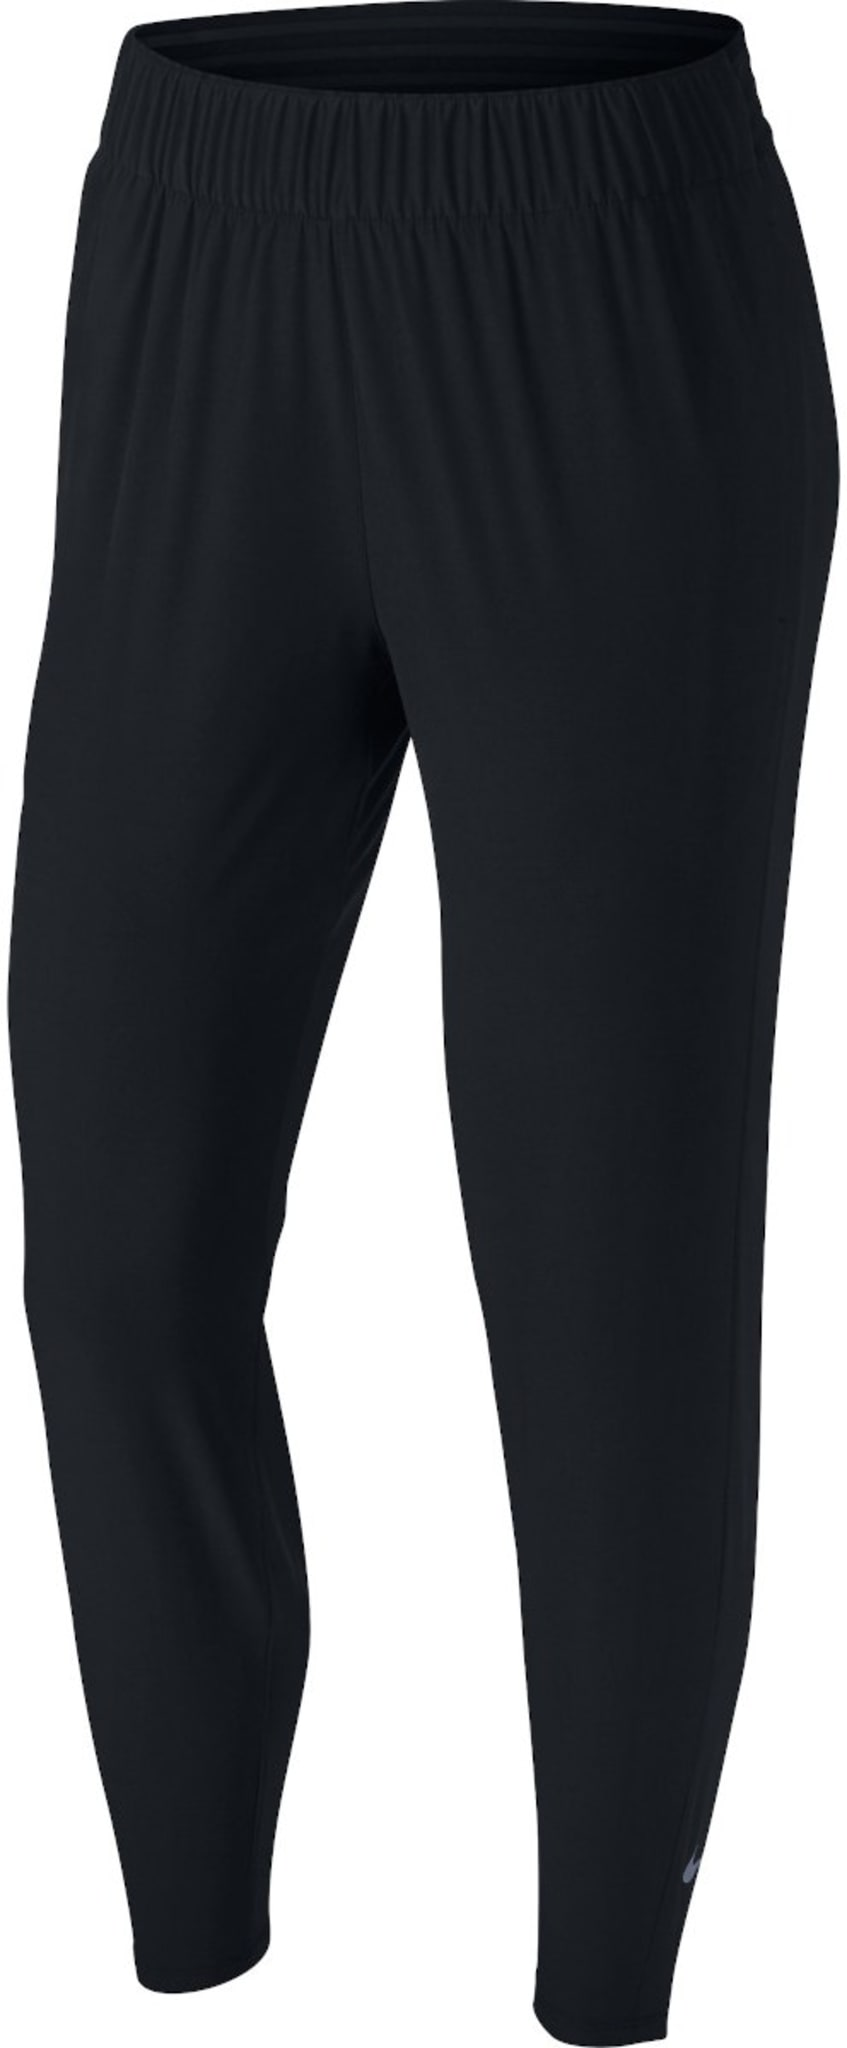 Nike Essential Women's 7/8 Running Pants